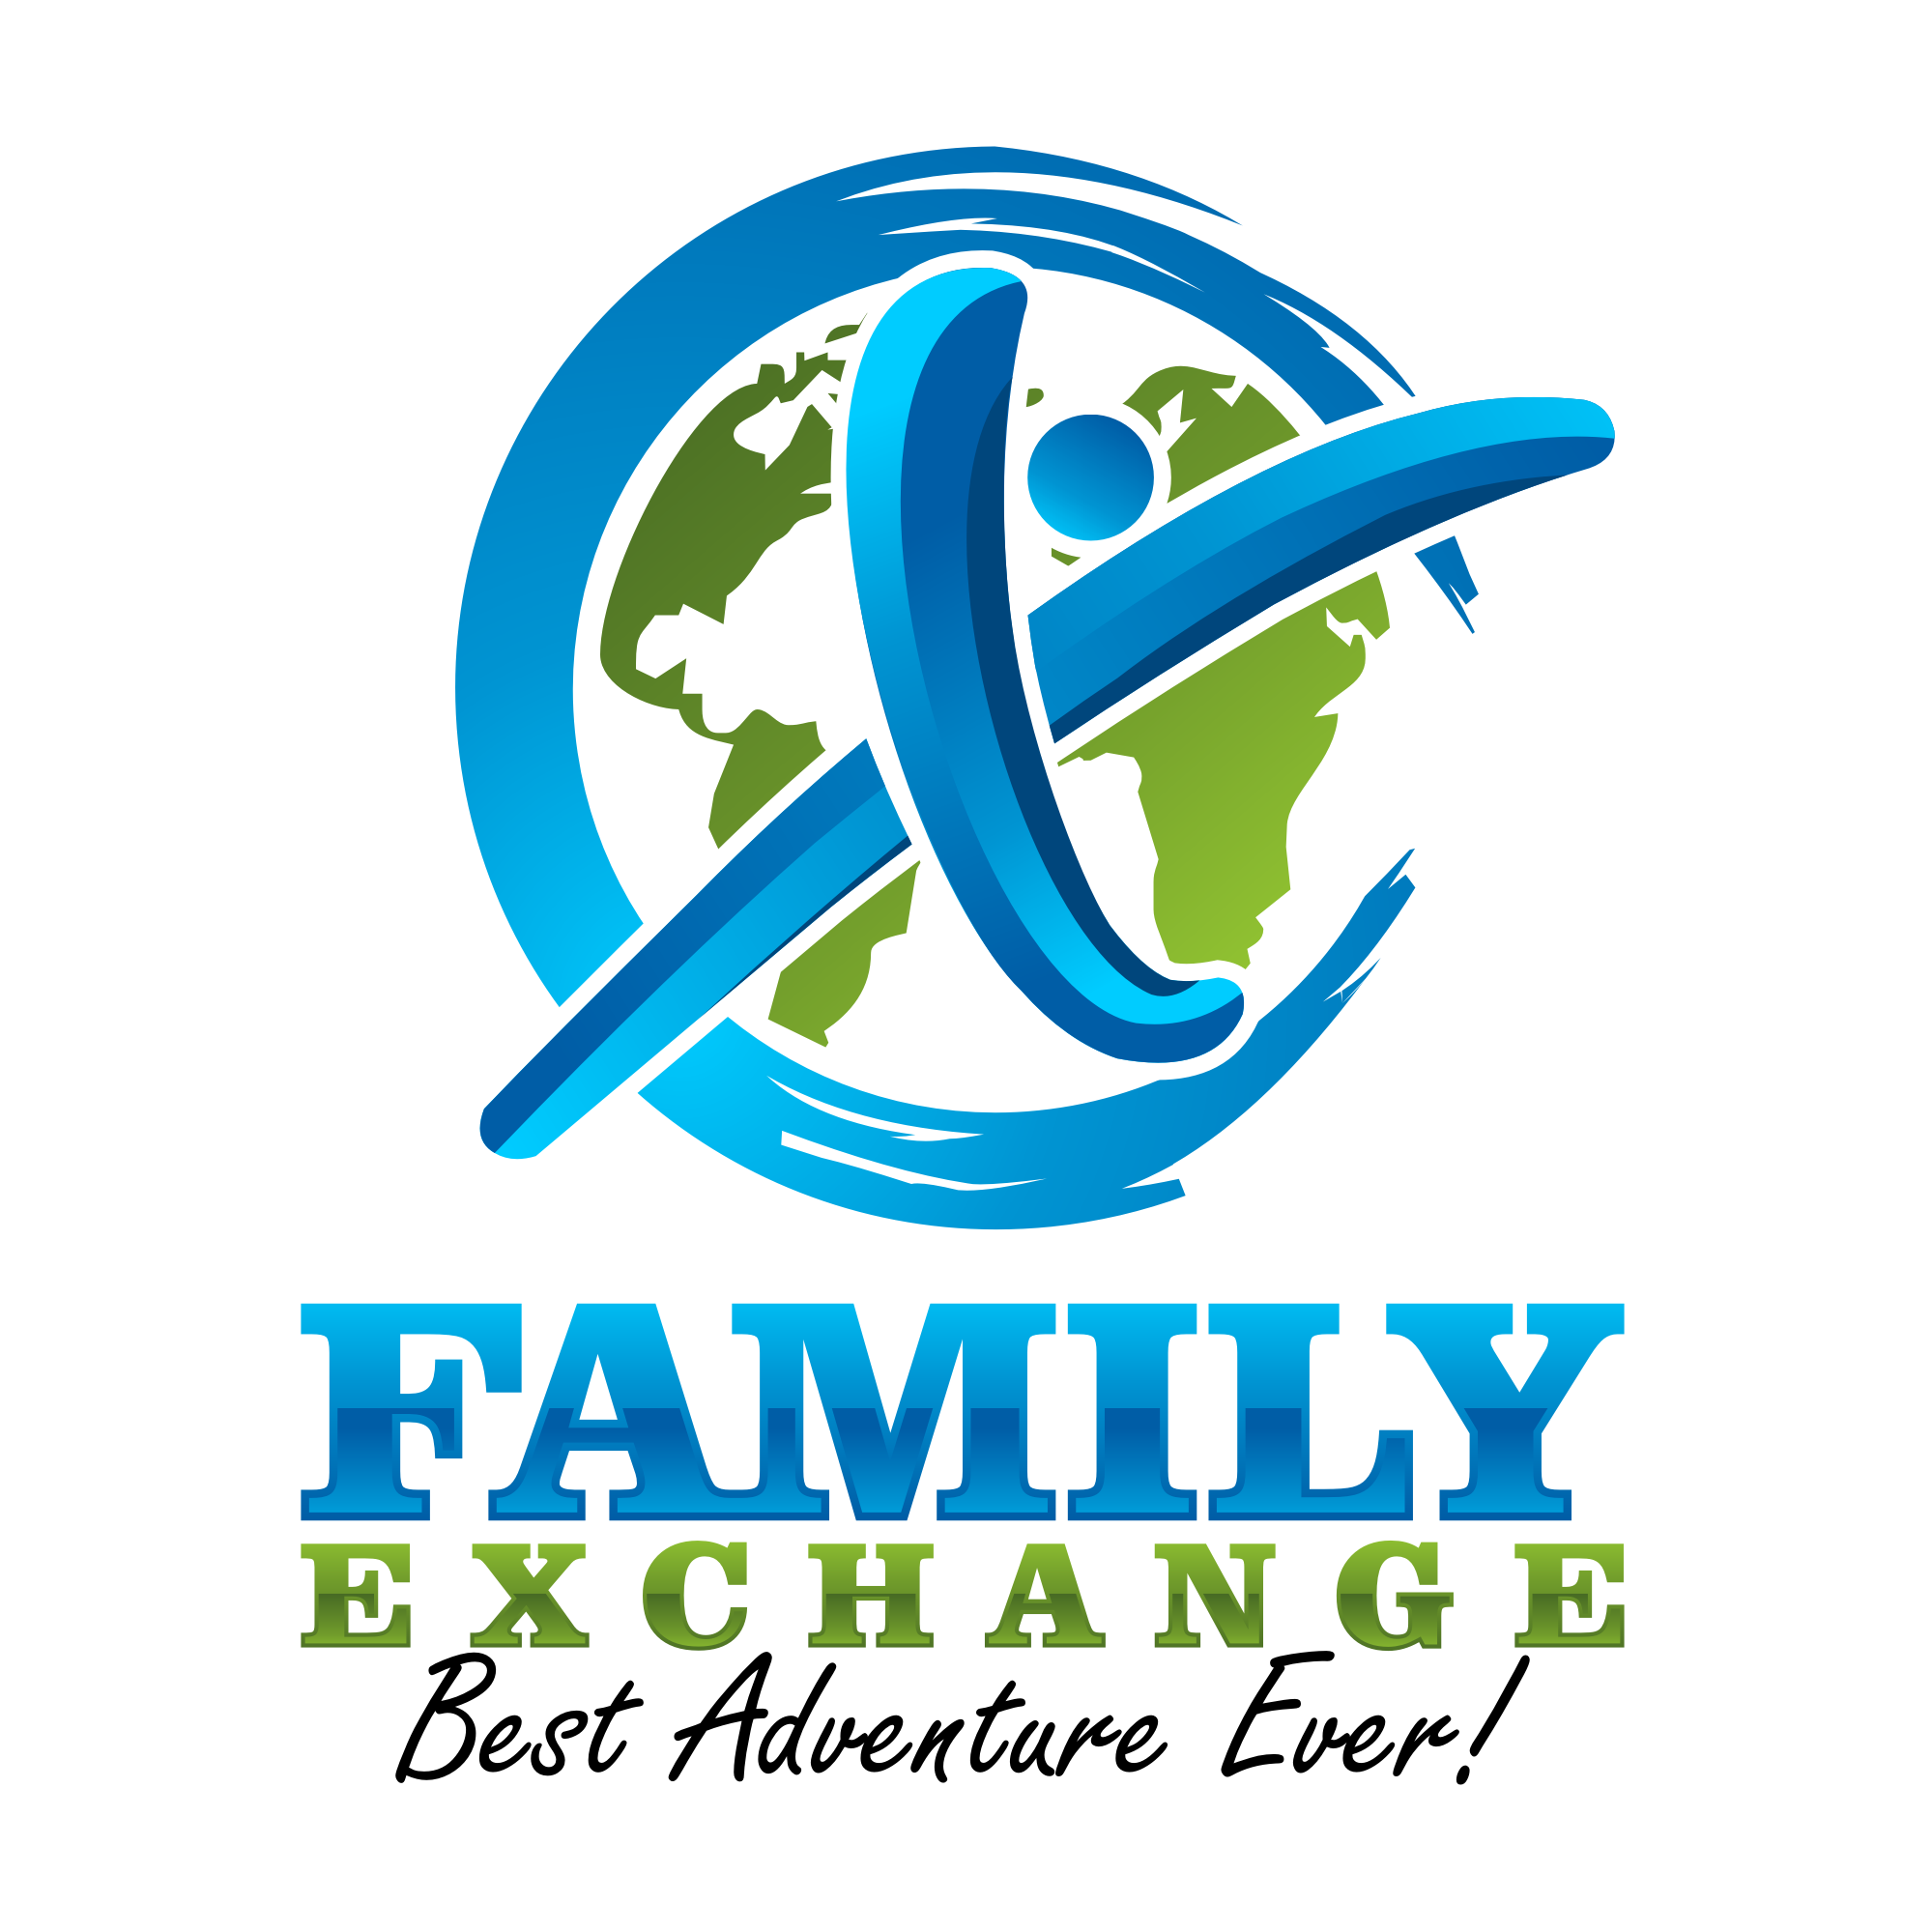 We need an EXCITING Logo for International Adventure Organization